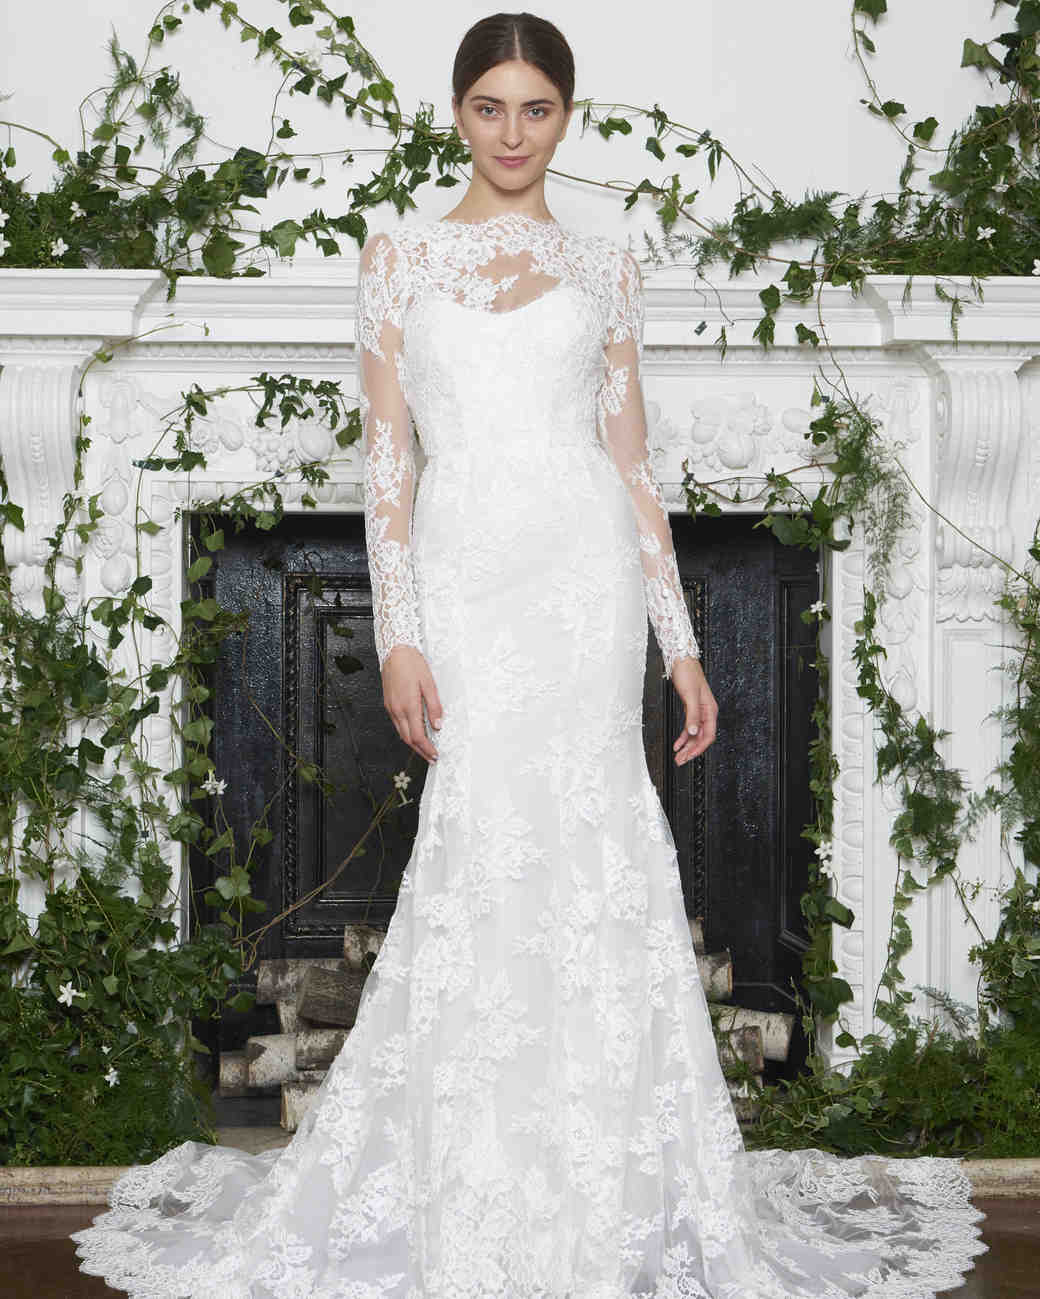 Meghan Mccain Wears Marchesa Wedding Dress: Long-Sleeved Wedding Dresses We Love